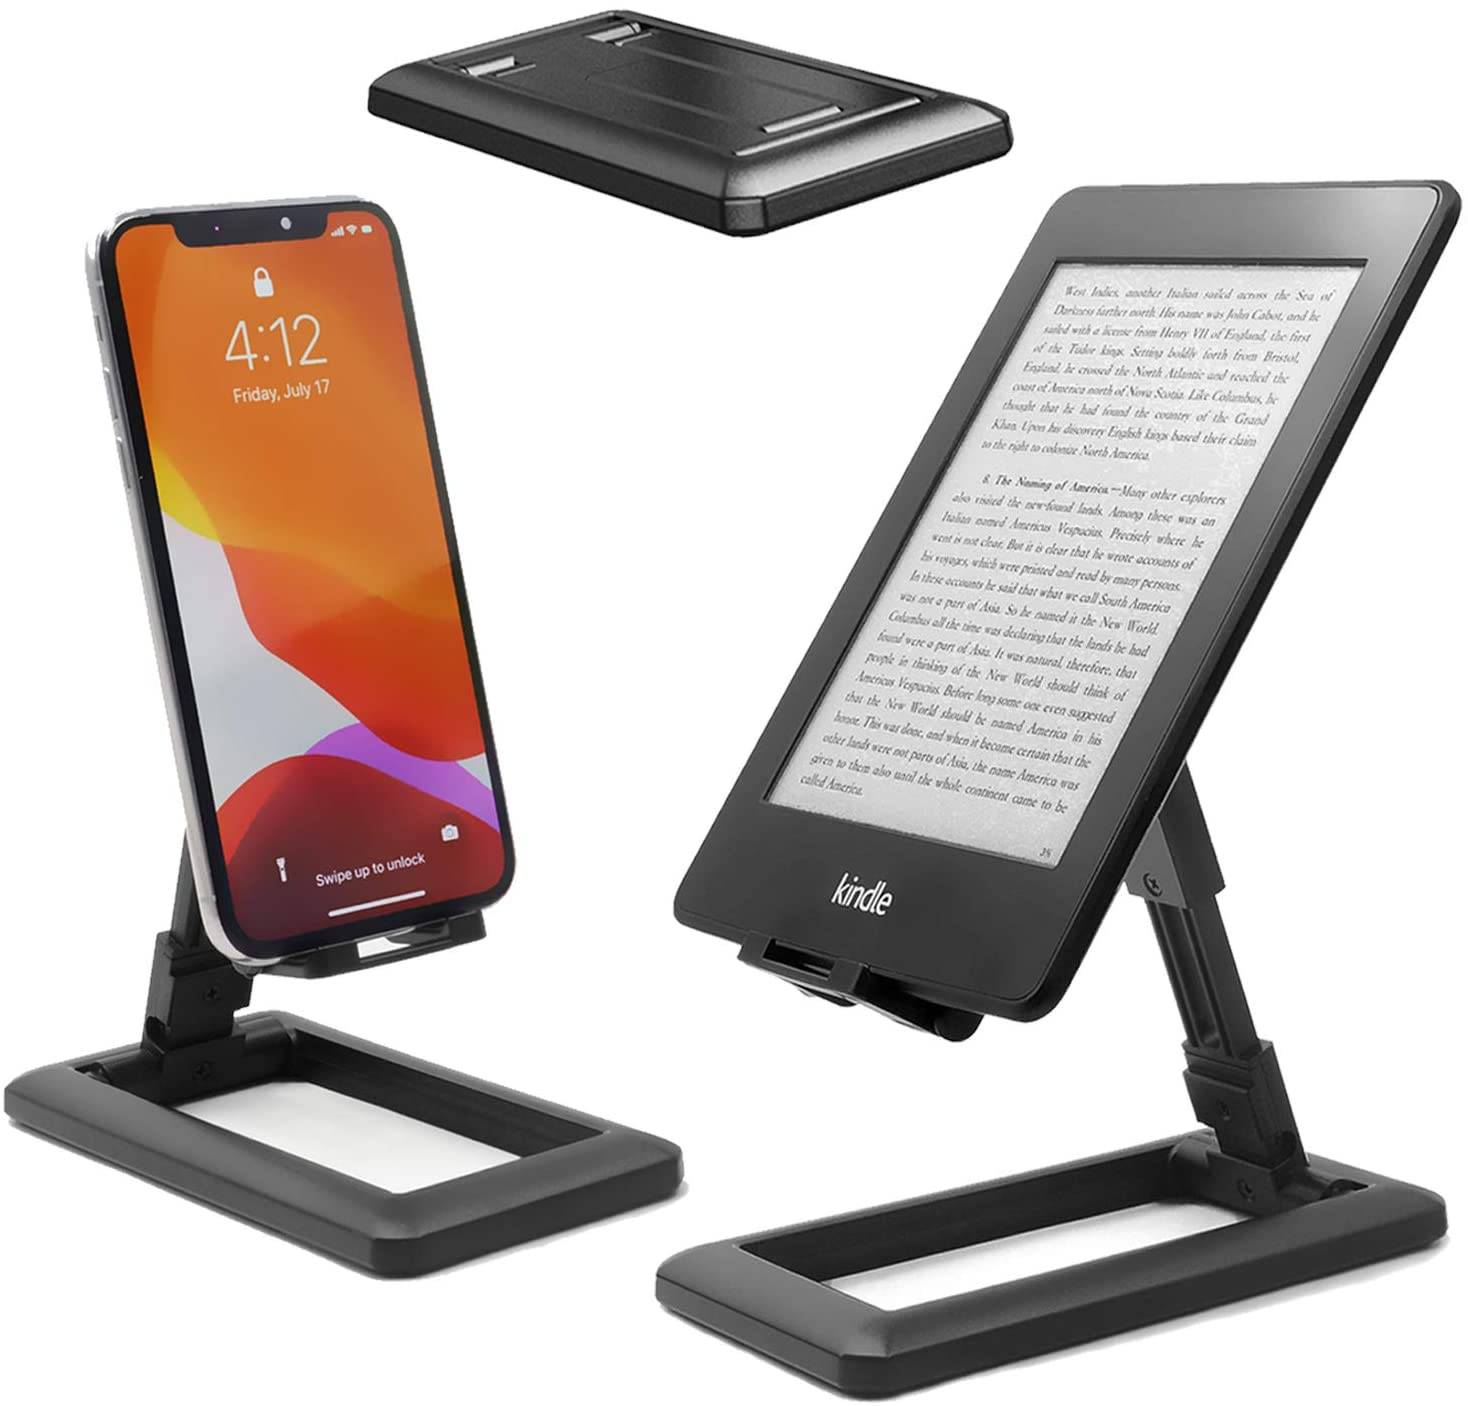 VKTEN Cell Phone Stand, Fully Foldable Portable Phone Stand, Angle Height Adjustable Phone Holder Desktop Cradle Dock Compatible with All Phones, iPad Mini, Nintendo Switch, Kindle, Tablets (Black)